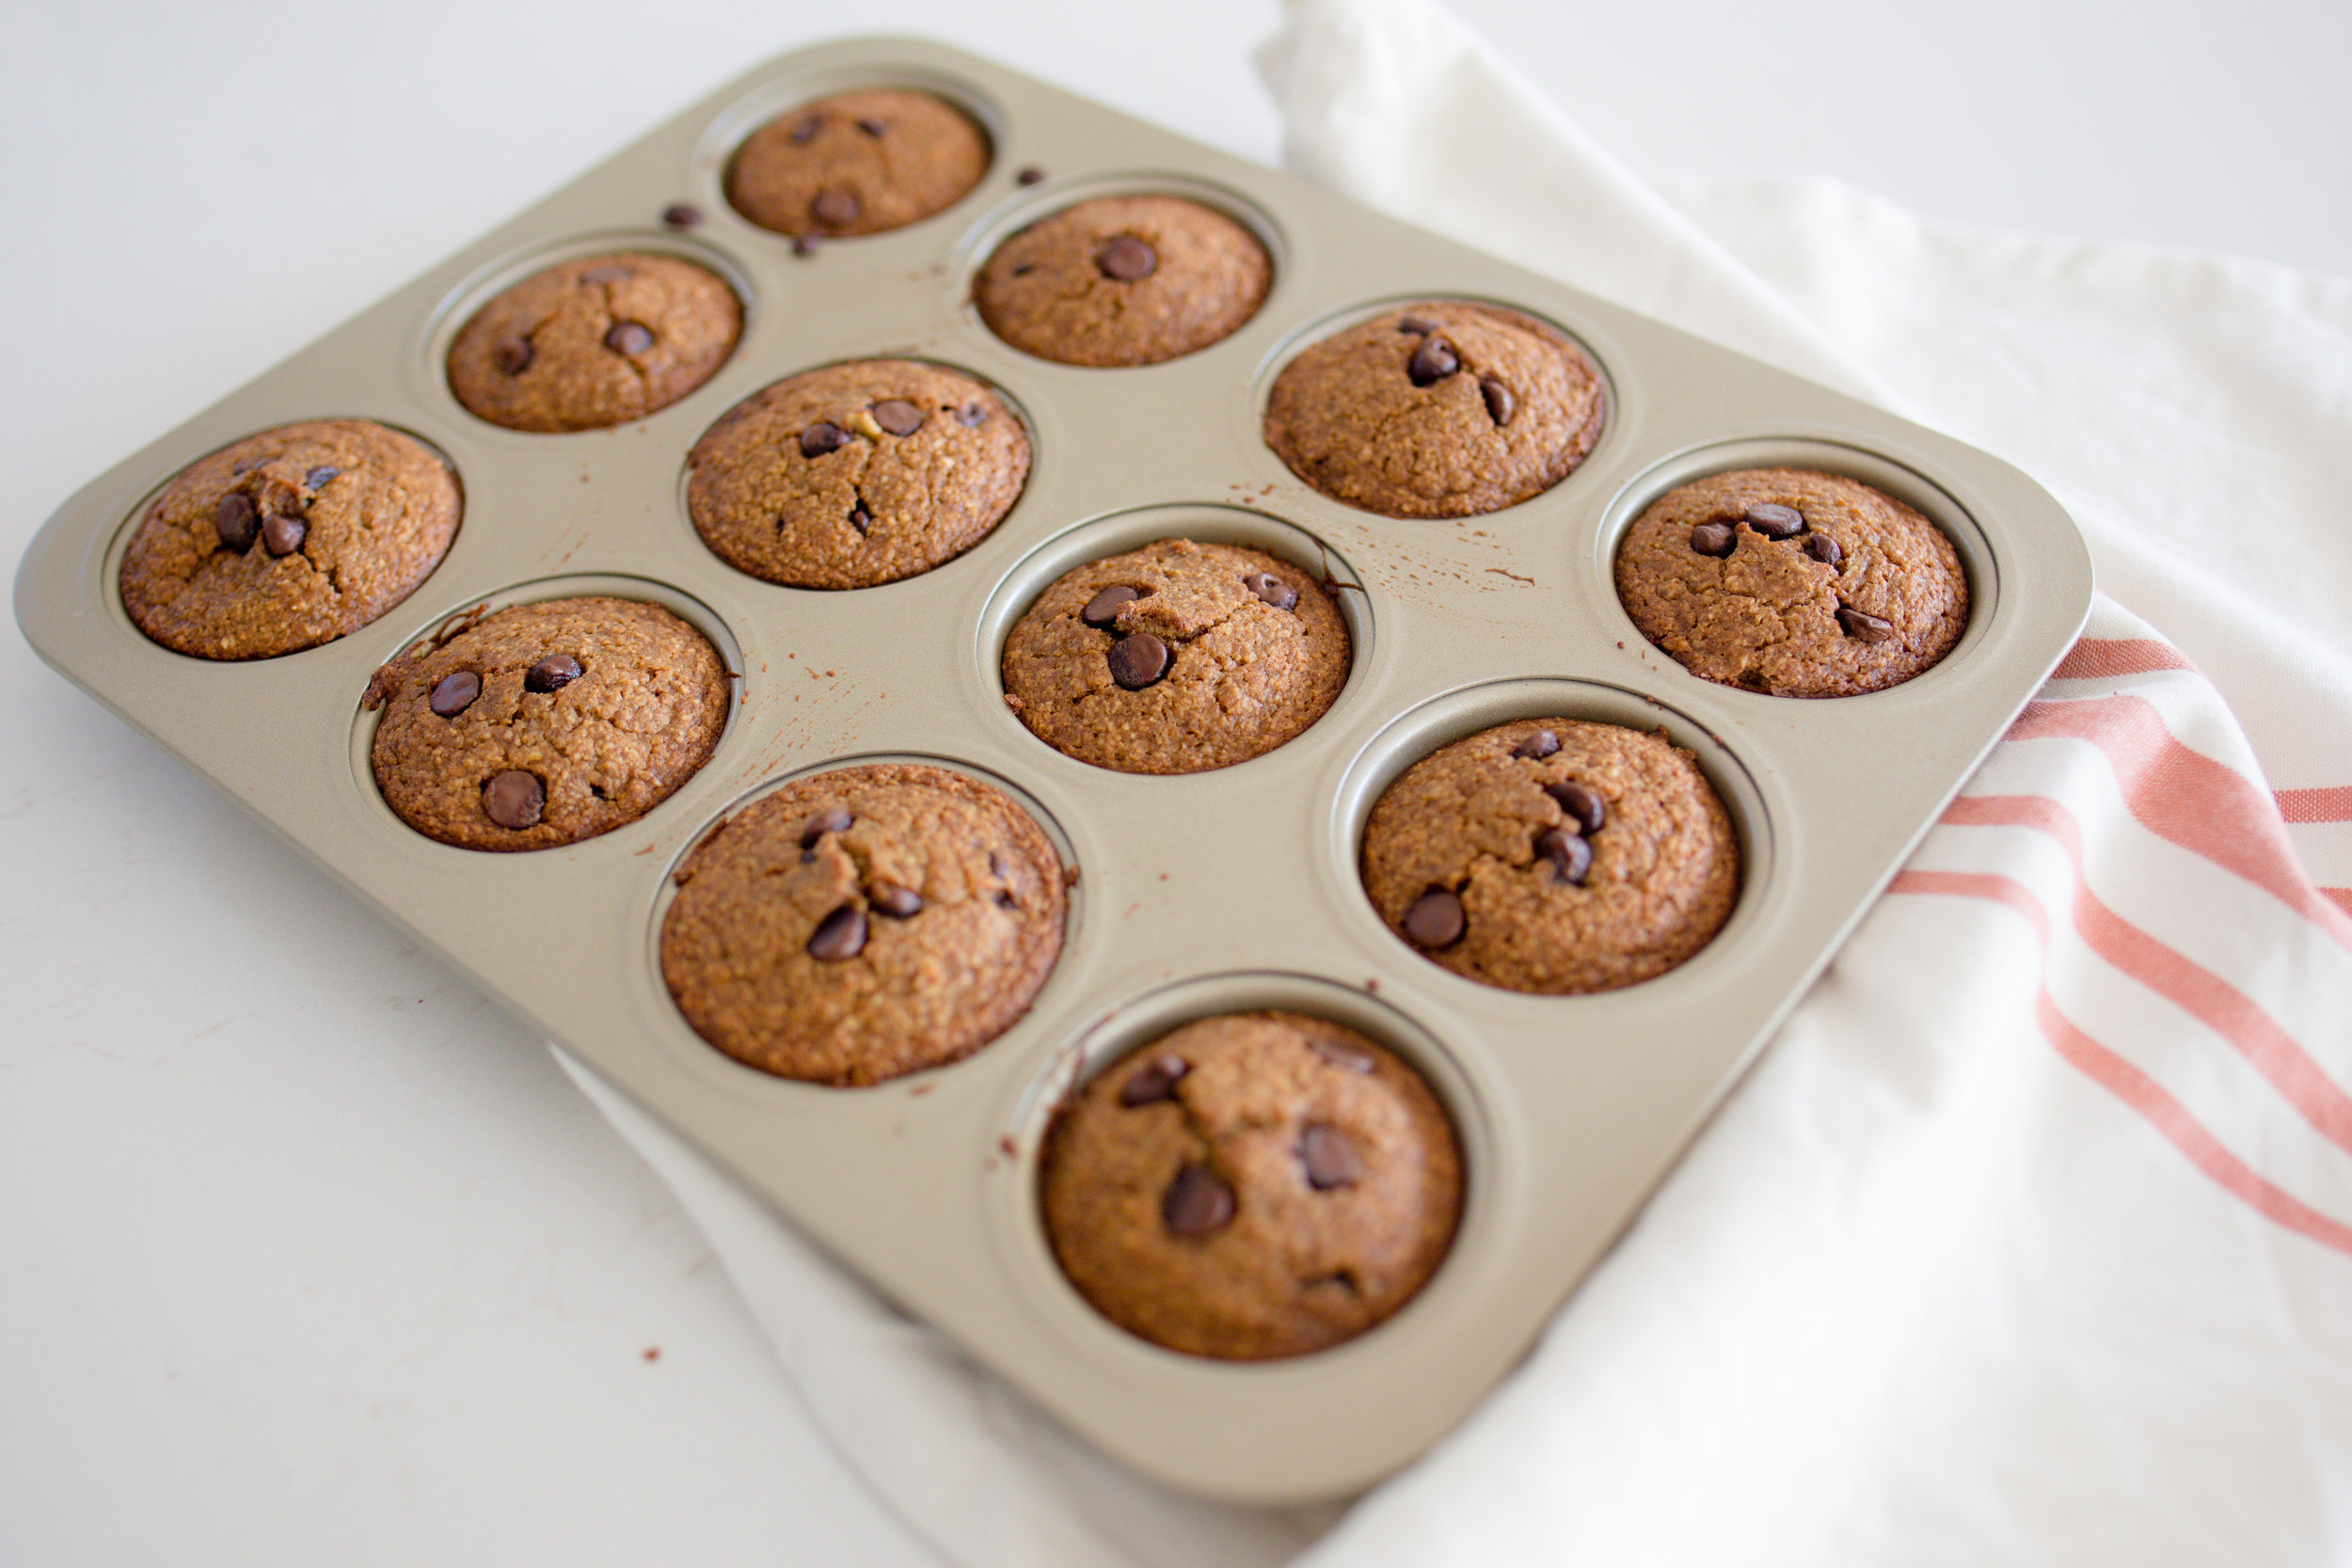 Guilt Free Gluten Free Chocolate Chip Muffins Fresh Out of Oven in Muffin Tin